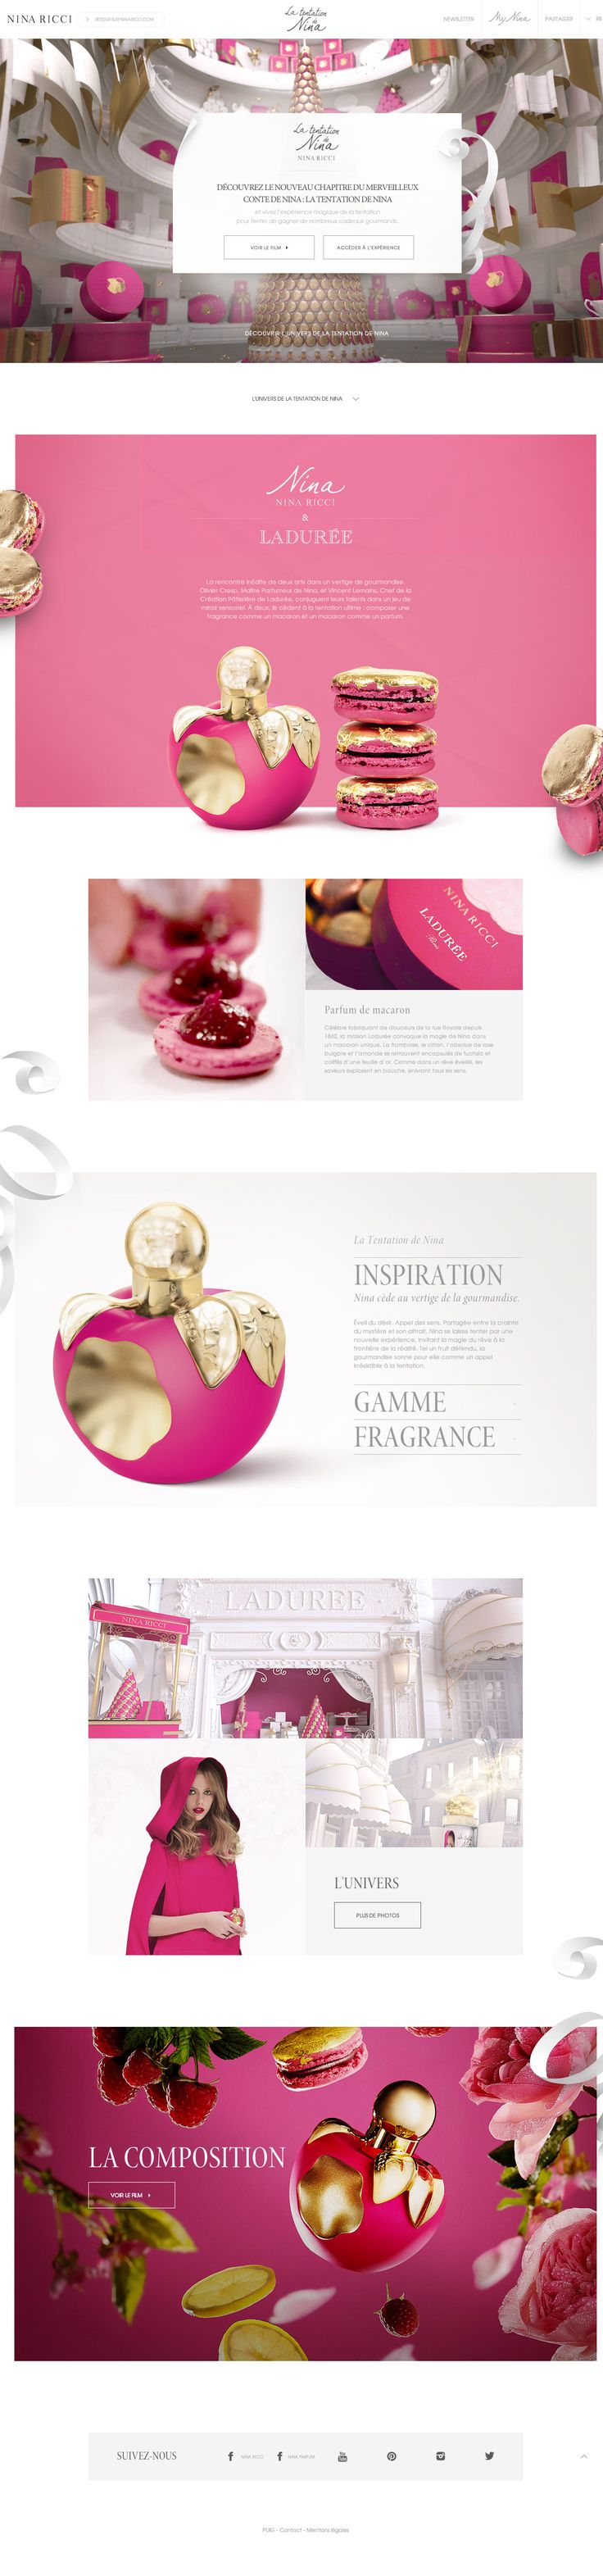 La tentation by Nina Ricci Beautiful experiment. Great work ! http://www.ninaricci.com/nina/experience